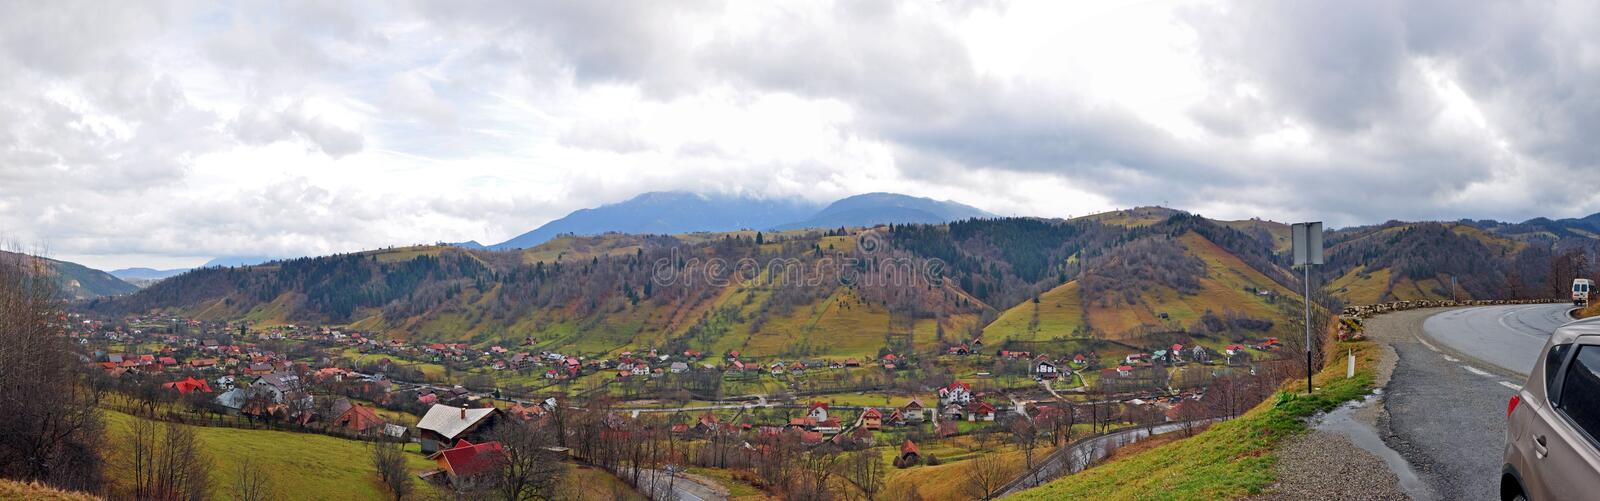 Download Mountain Village And 180 Degree Road Stock Image - Image: 17298457